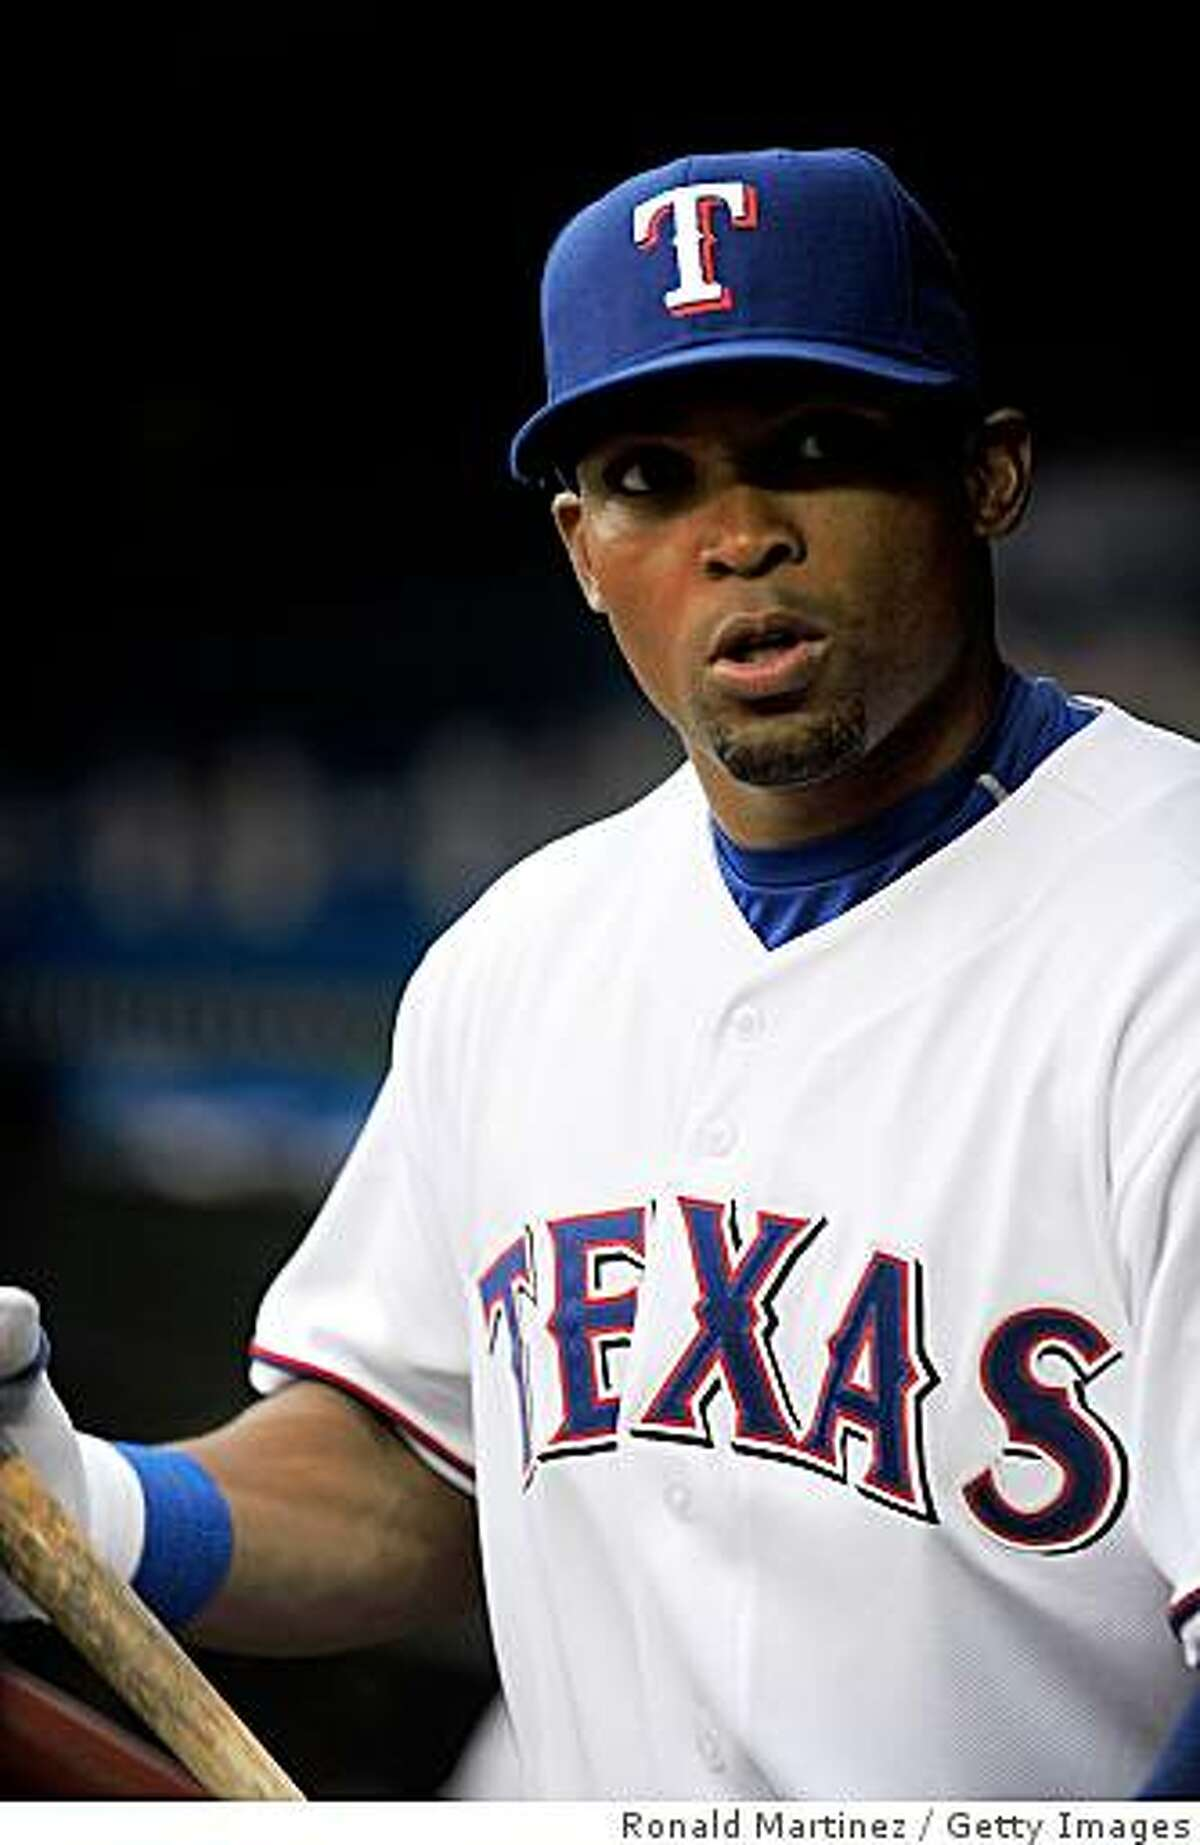 ARLINGTON, TX - APRIL 15: Left fielder Marlon Byrd #22 of the Texas Rangers on April 15, 2009 at Rangers Ballpark in Arlington, Texas. (Photo by Ronald Martinez/Getty Images)